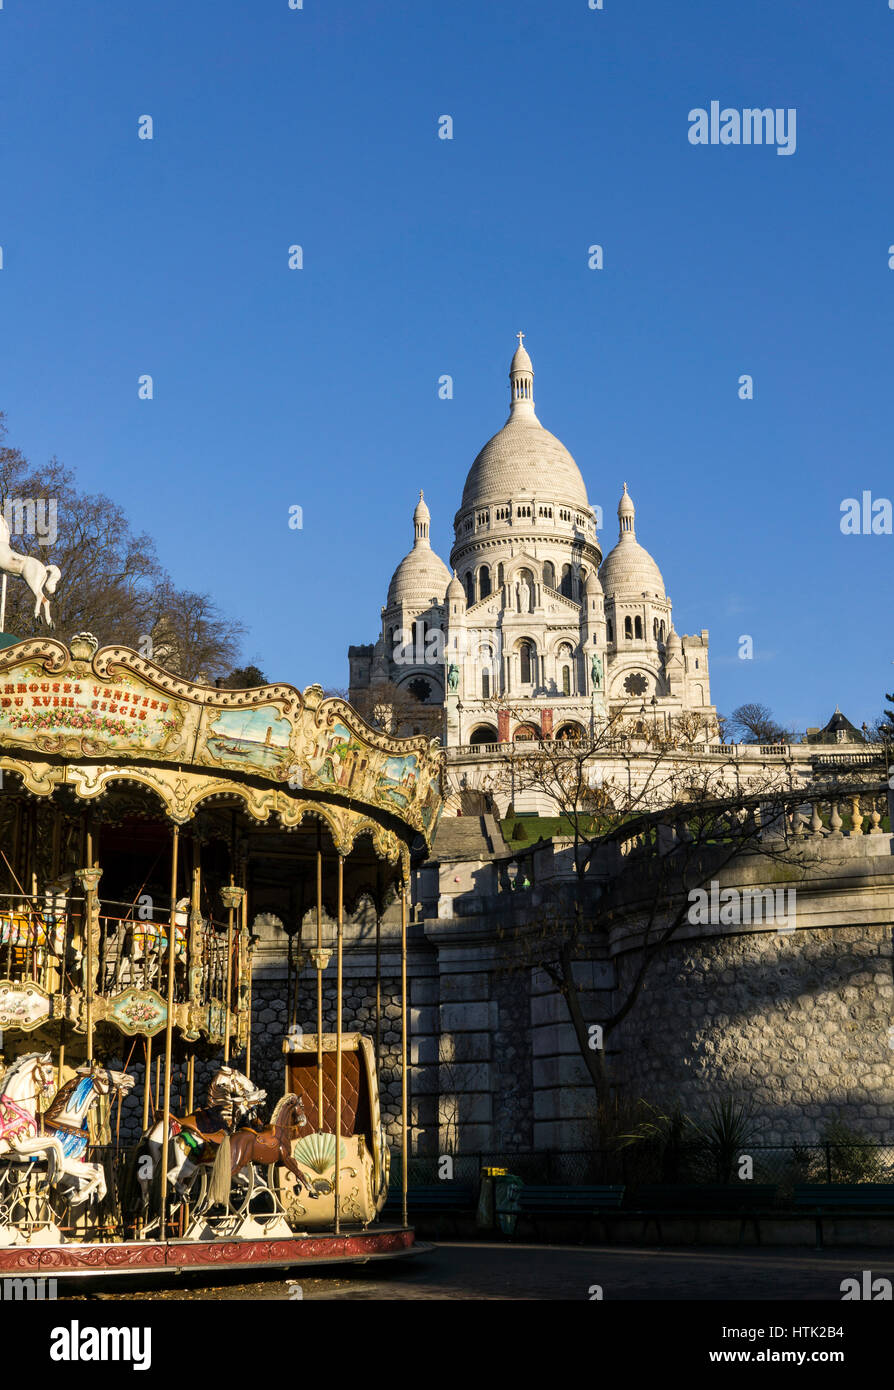 The Basilica of the Sacred Heart of Paris (1875-1914), France. - Stock Image